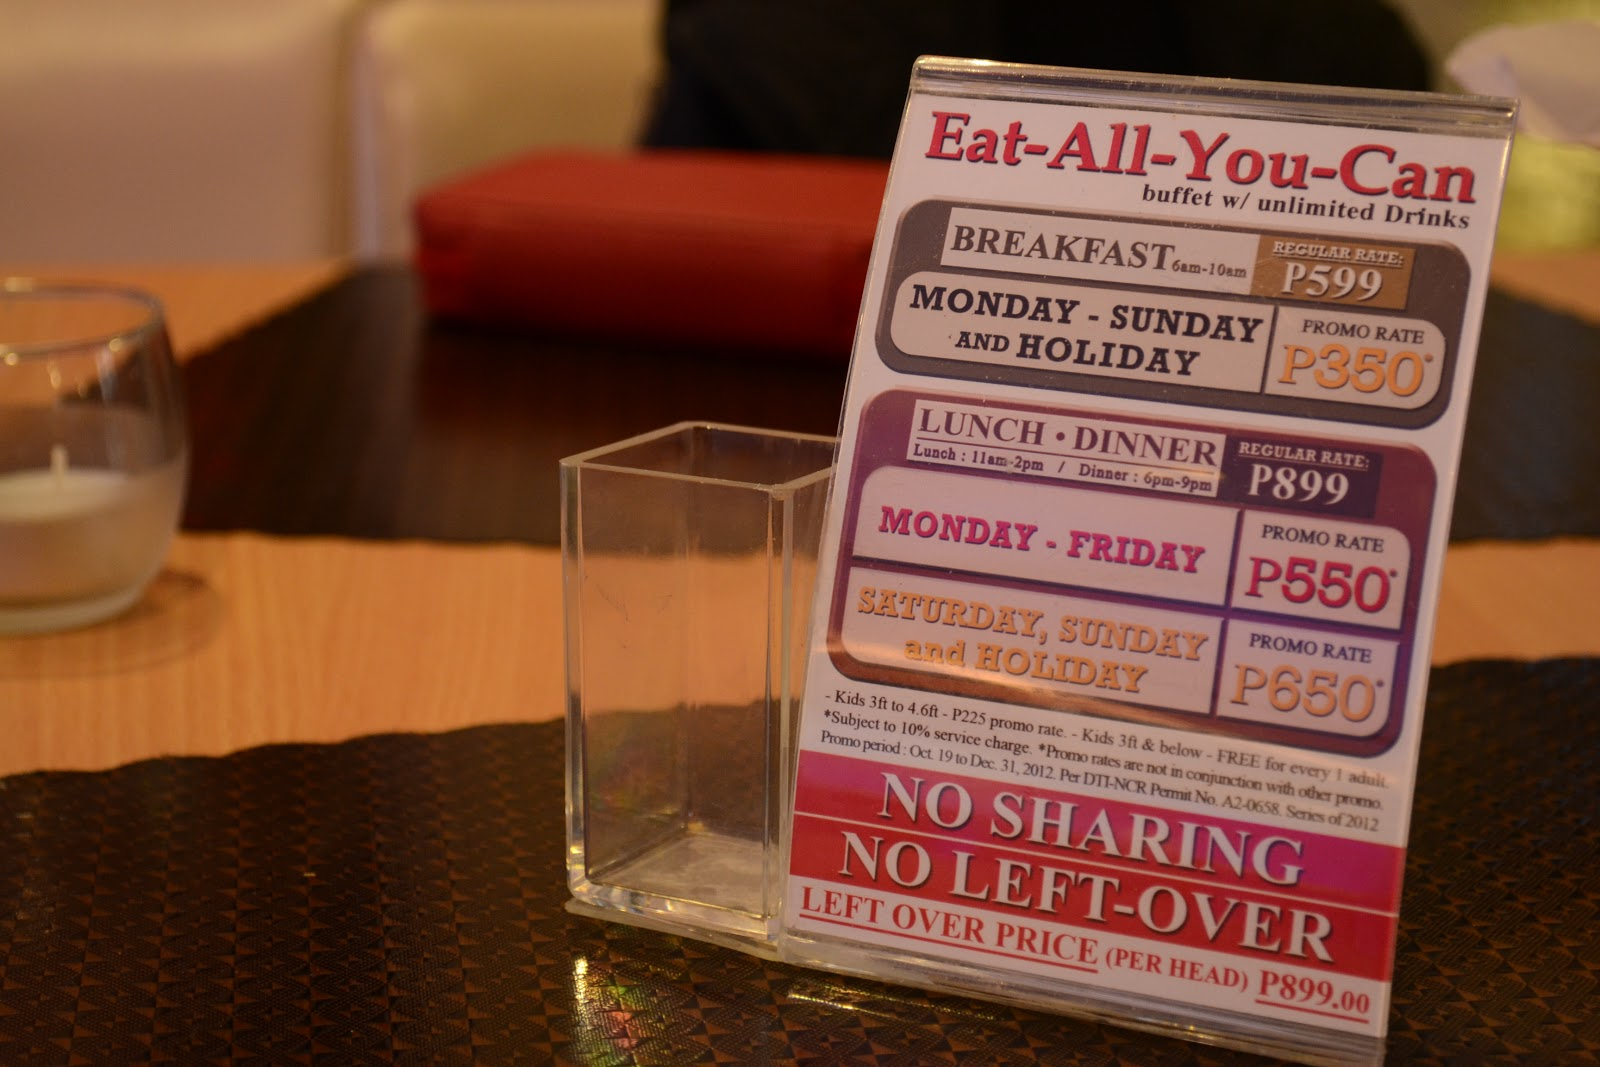 Ace Water Spa Buffet Price